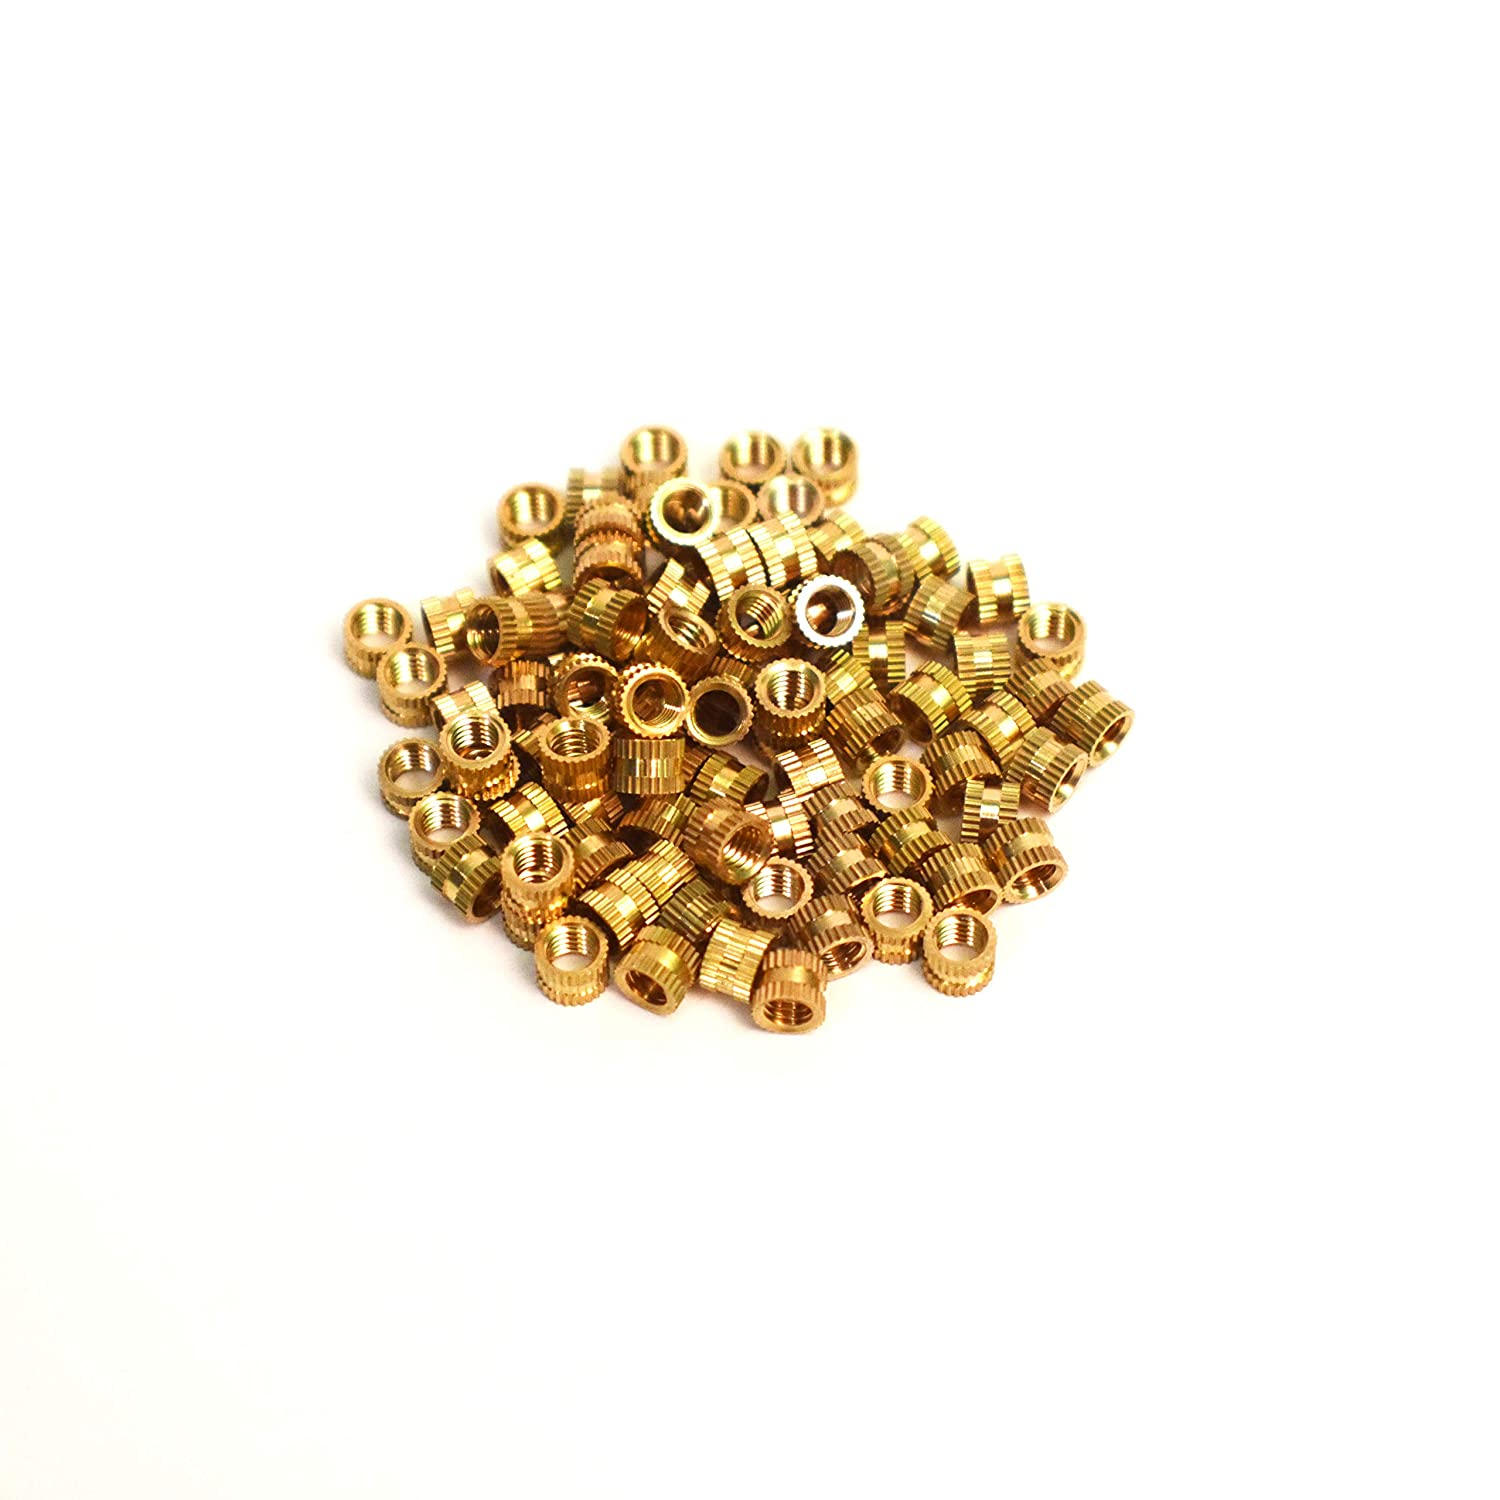 J/&J Products M3 Brass Insert 100pcs,4.0mm OD 3mm Length Female M3 Thread Press Fitting or Heat Sink or Injection Molding Type 100 pcs